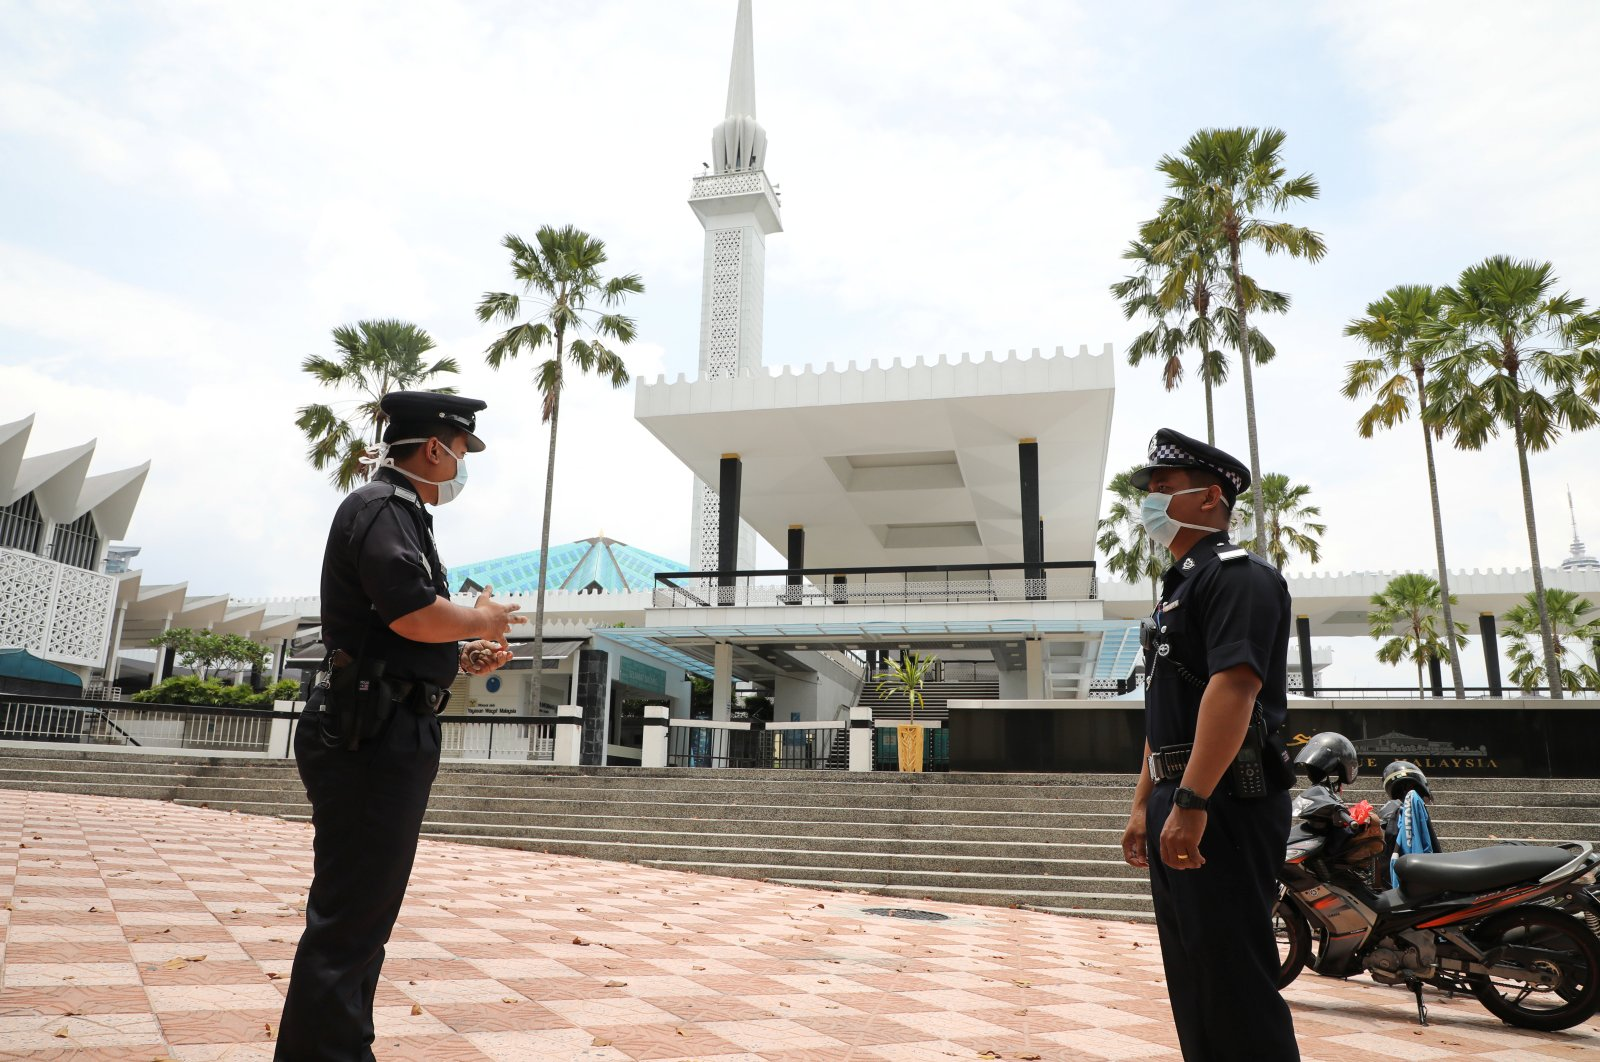 Police officers wearing protective masks stand guard outside National Mosque, after all, mosques in the country suspended Friday prayers during the movement control order due to the spread of the coronavirus disease (COVID-19), in Kuala Lumpur, Malaysia, March 20, 2020. (Reuters Photo)